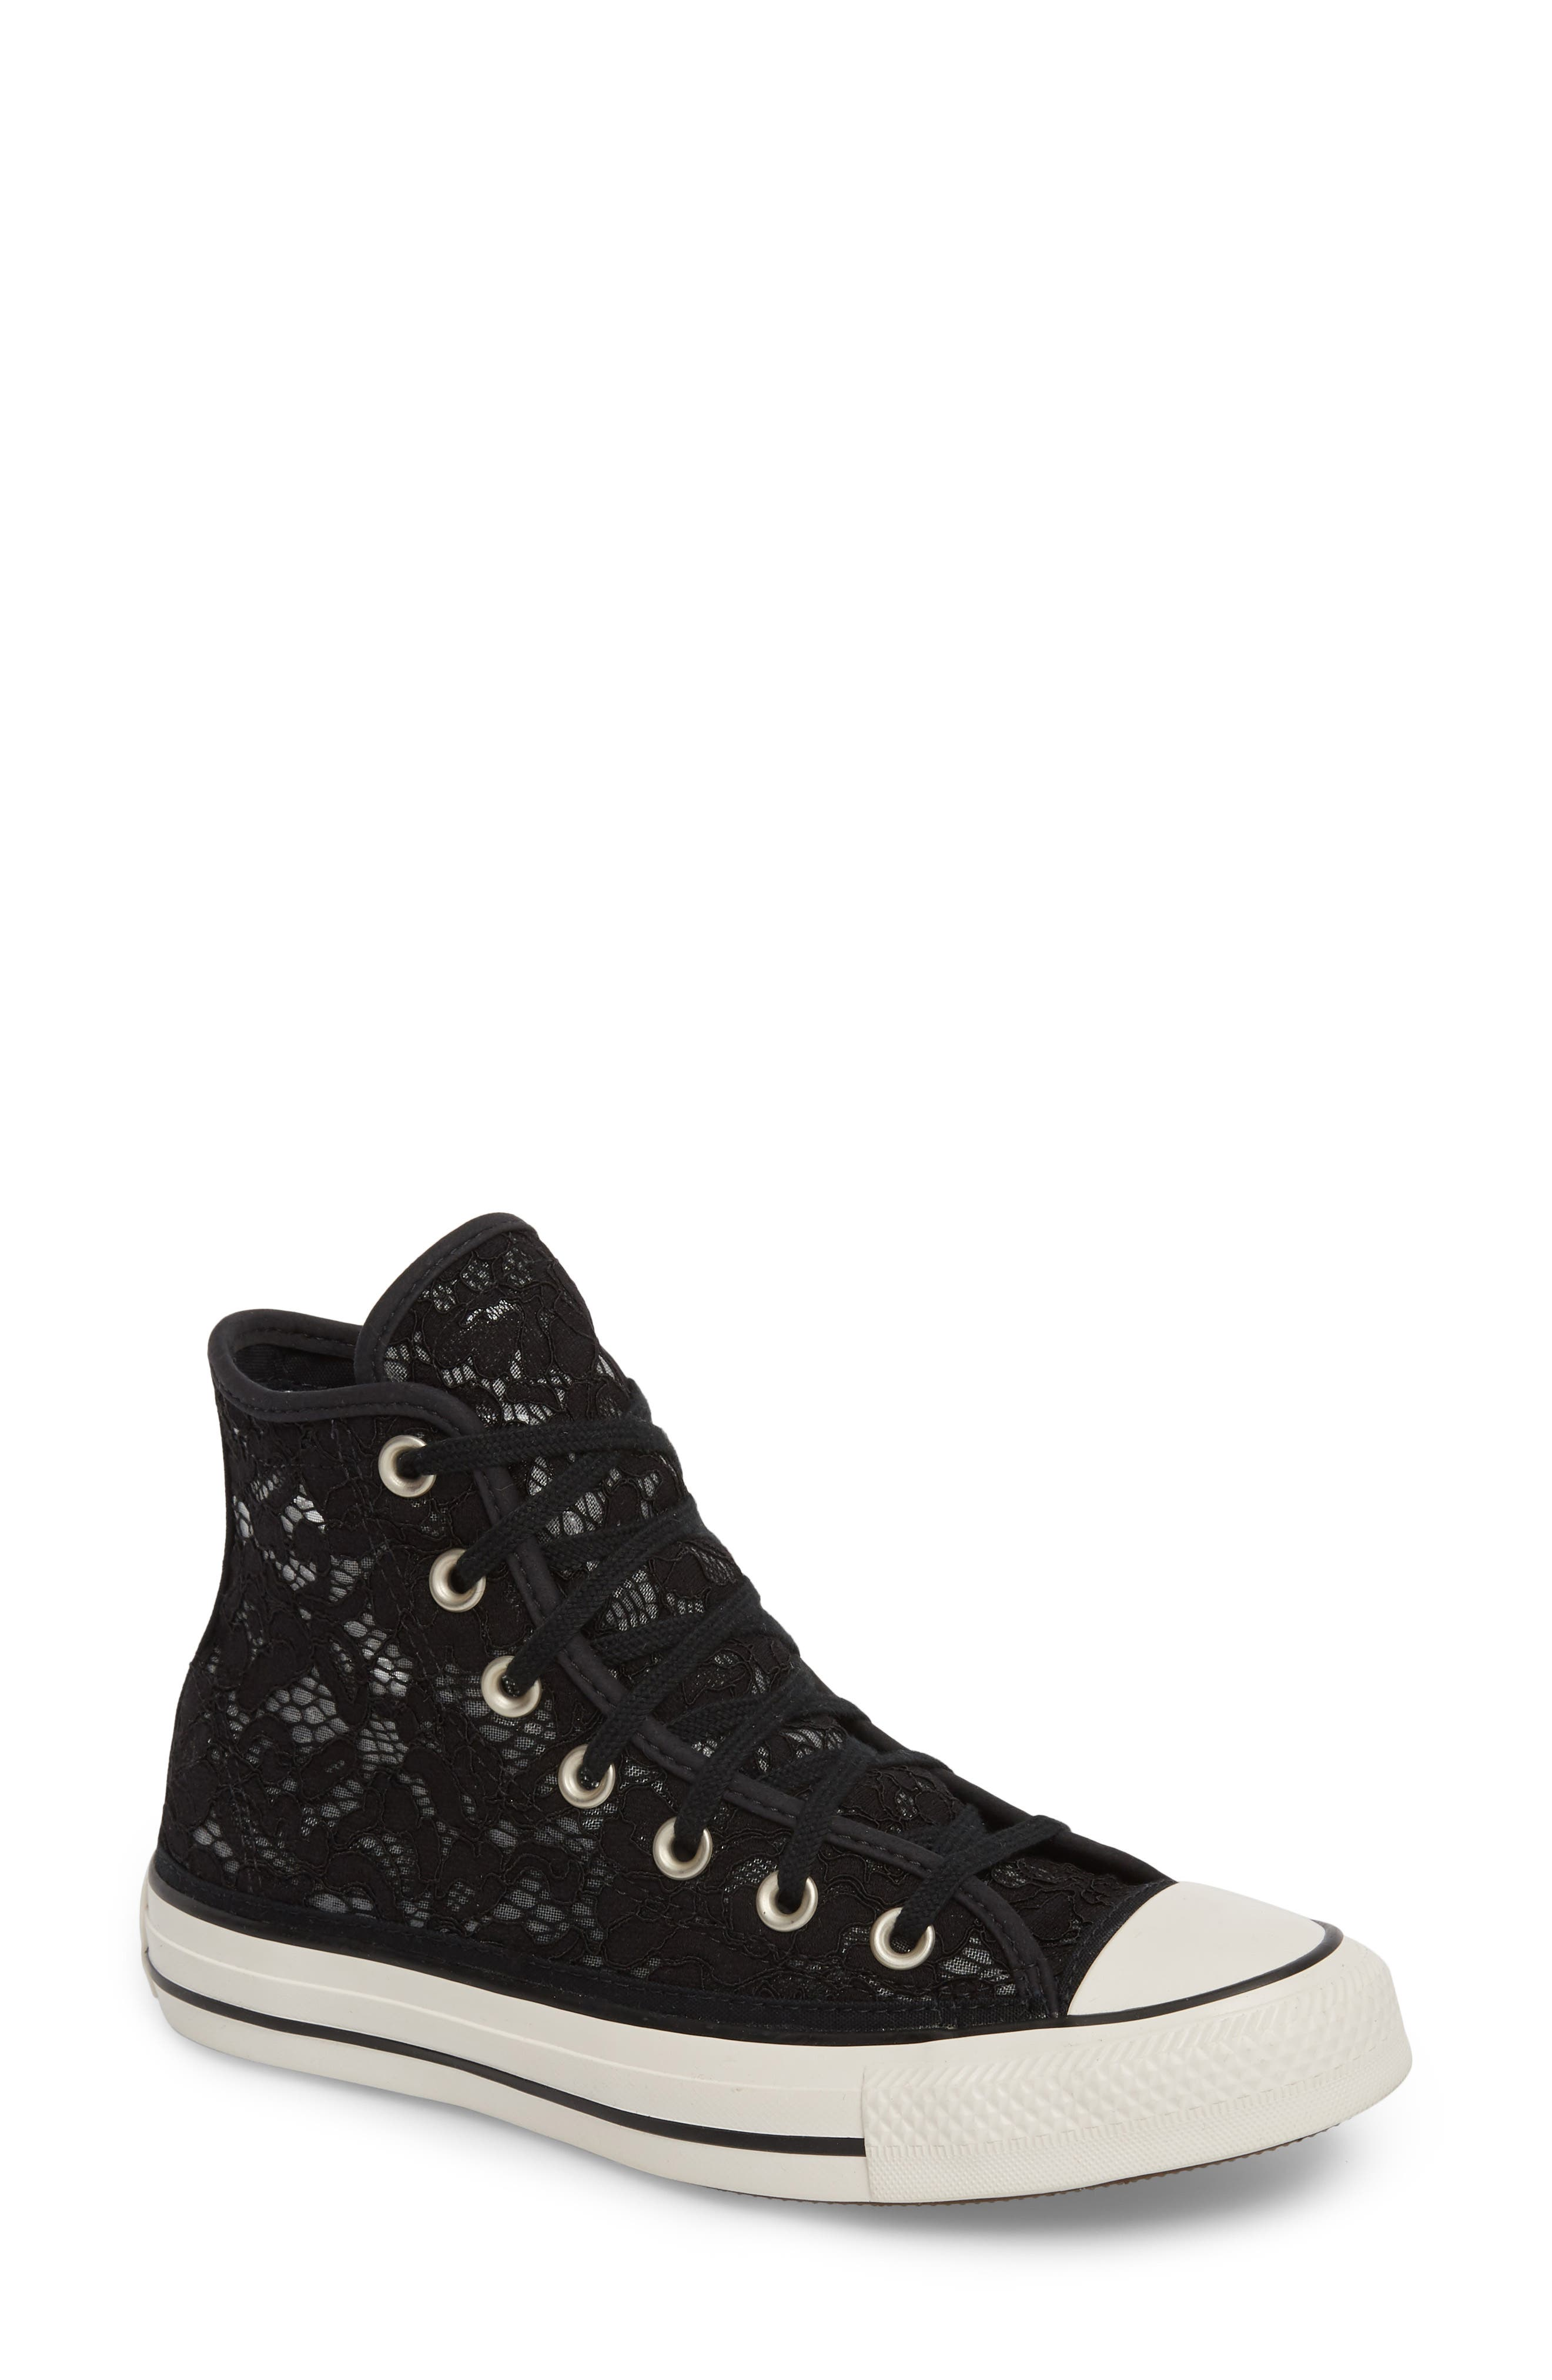 Chuck Taylor<sup>®</sup> All Star Lace High-Top Sneaker,                         Main,                         color, Black/ White